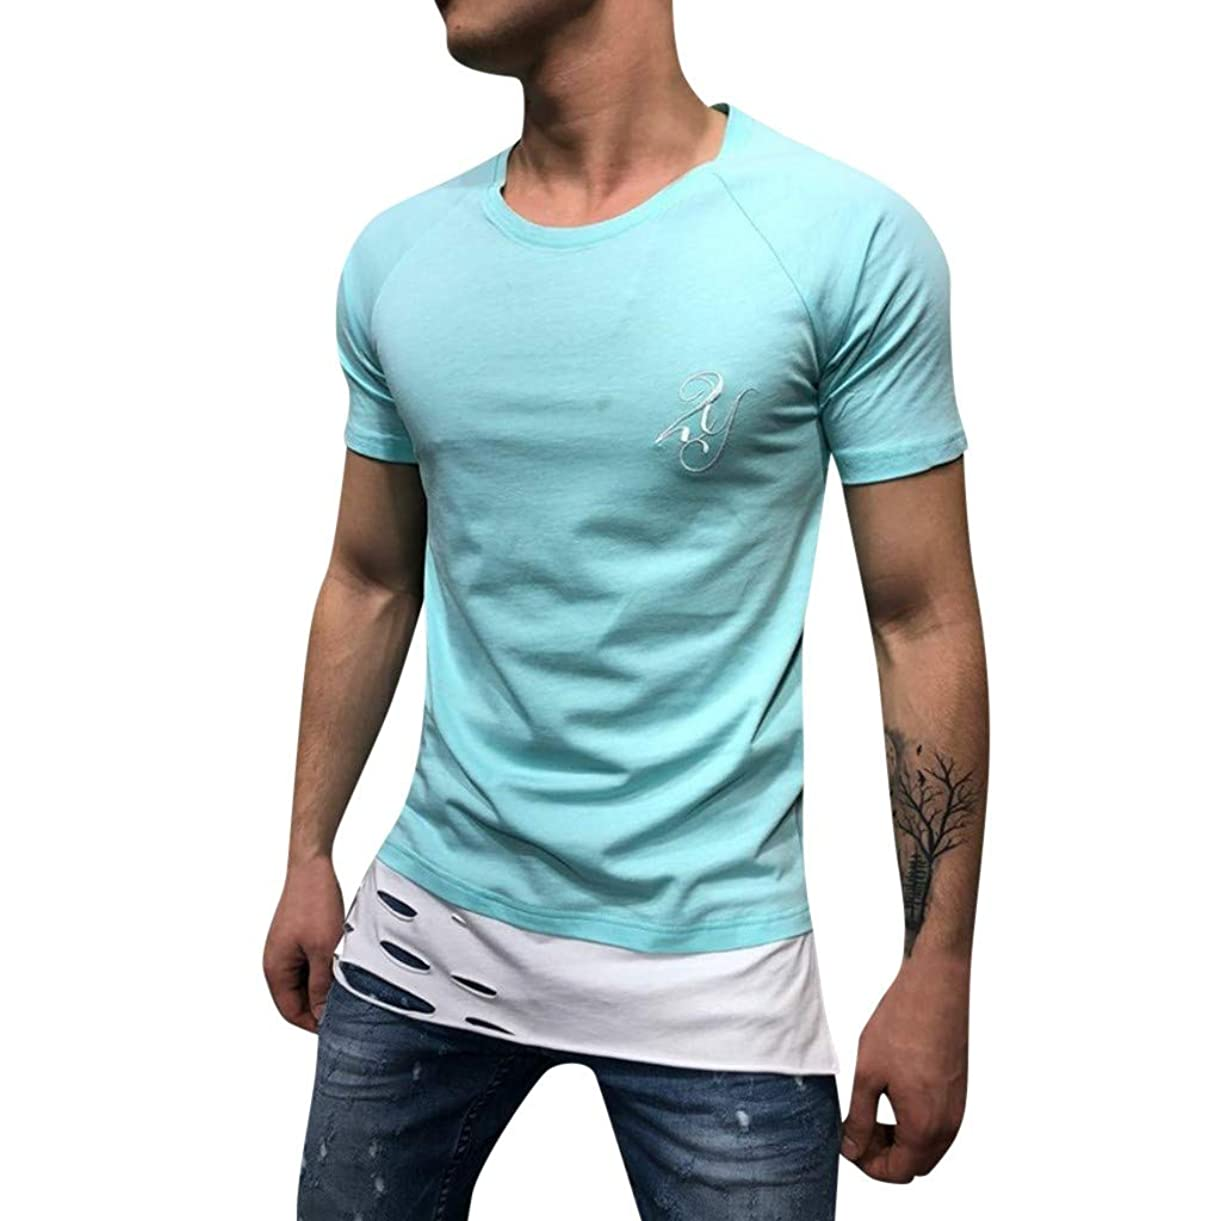 Men's Shirts Summer Letter Print Slim Fit Round-Neck Short Sleeve Hollow Tee Tops Blouse xkngr4581